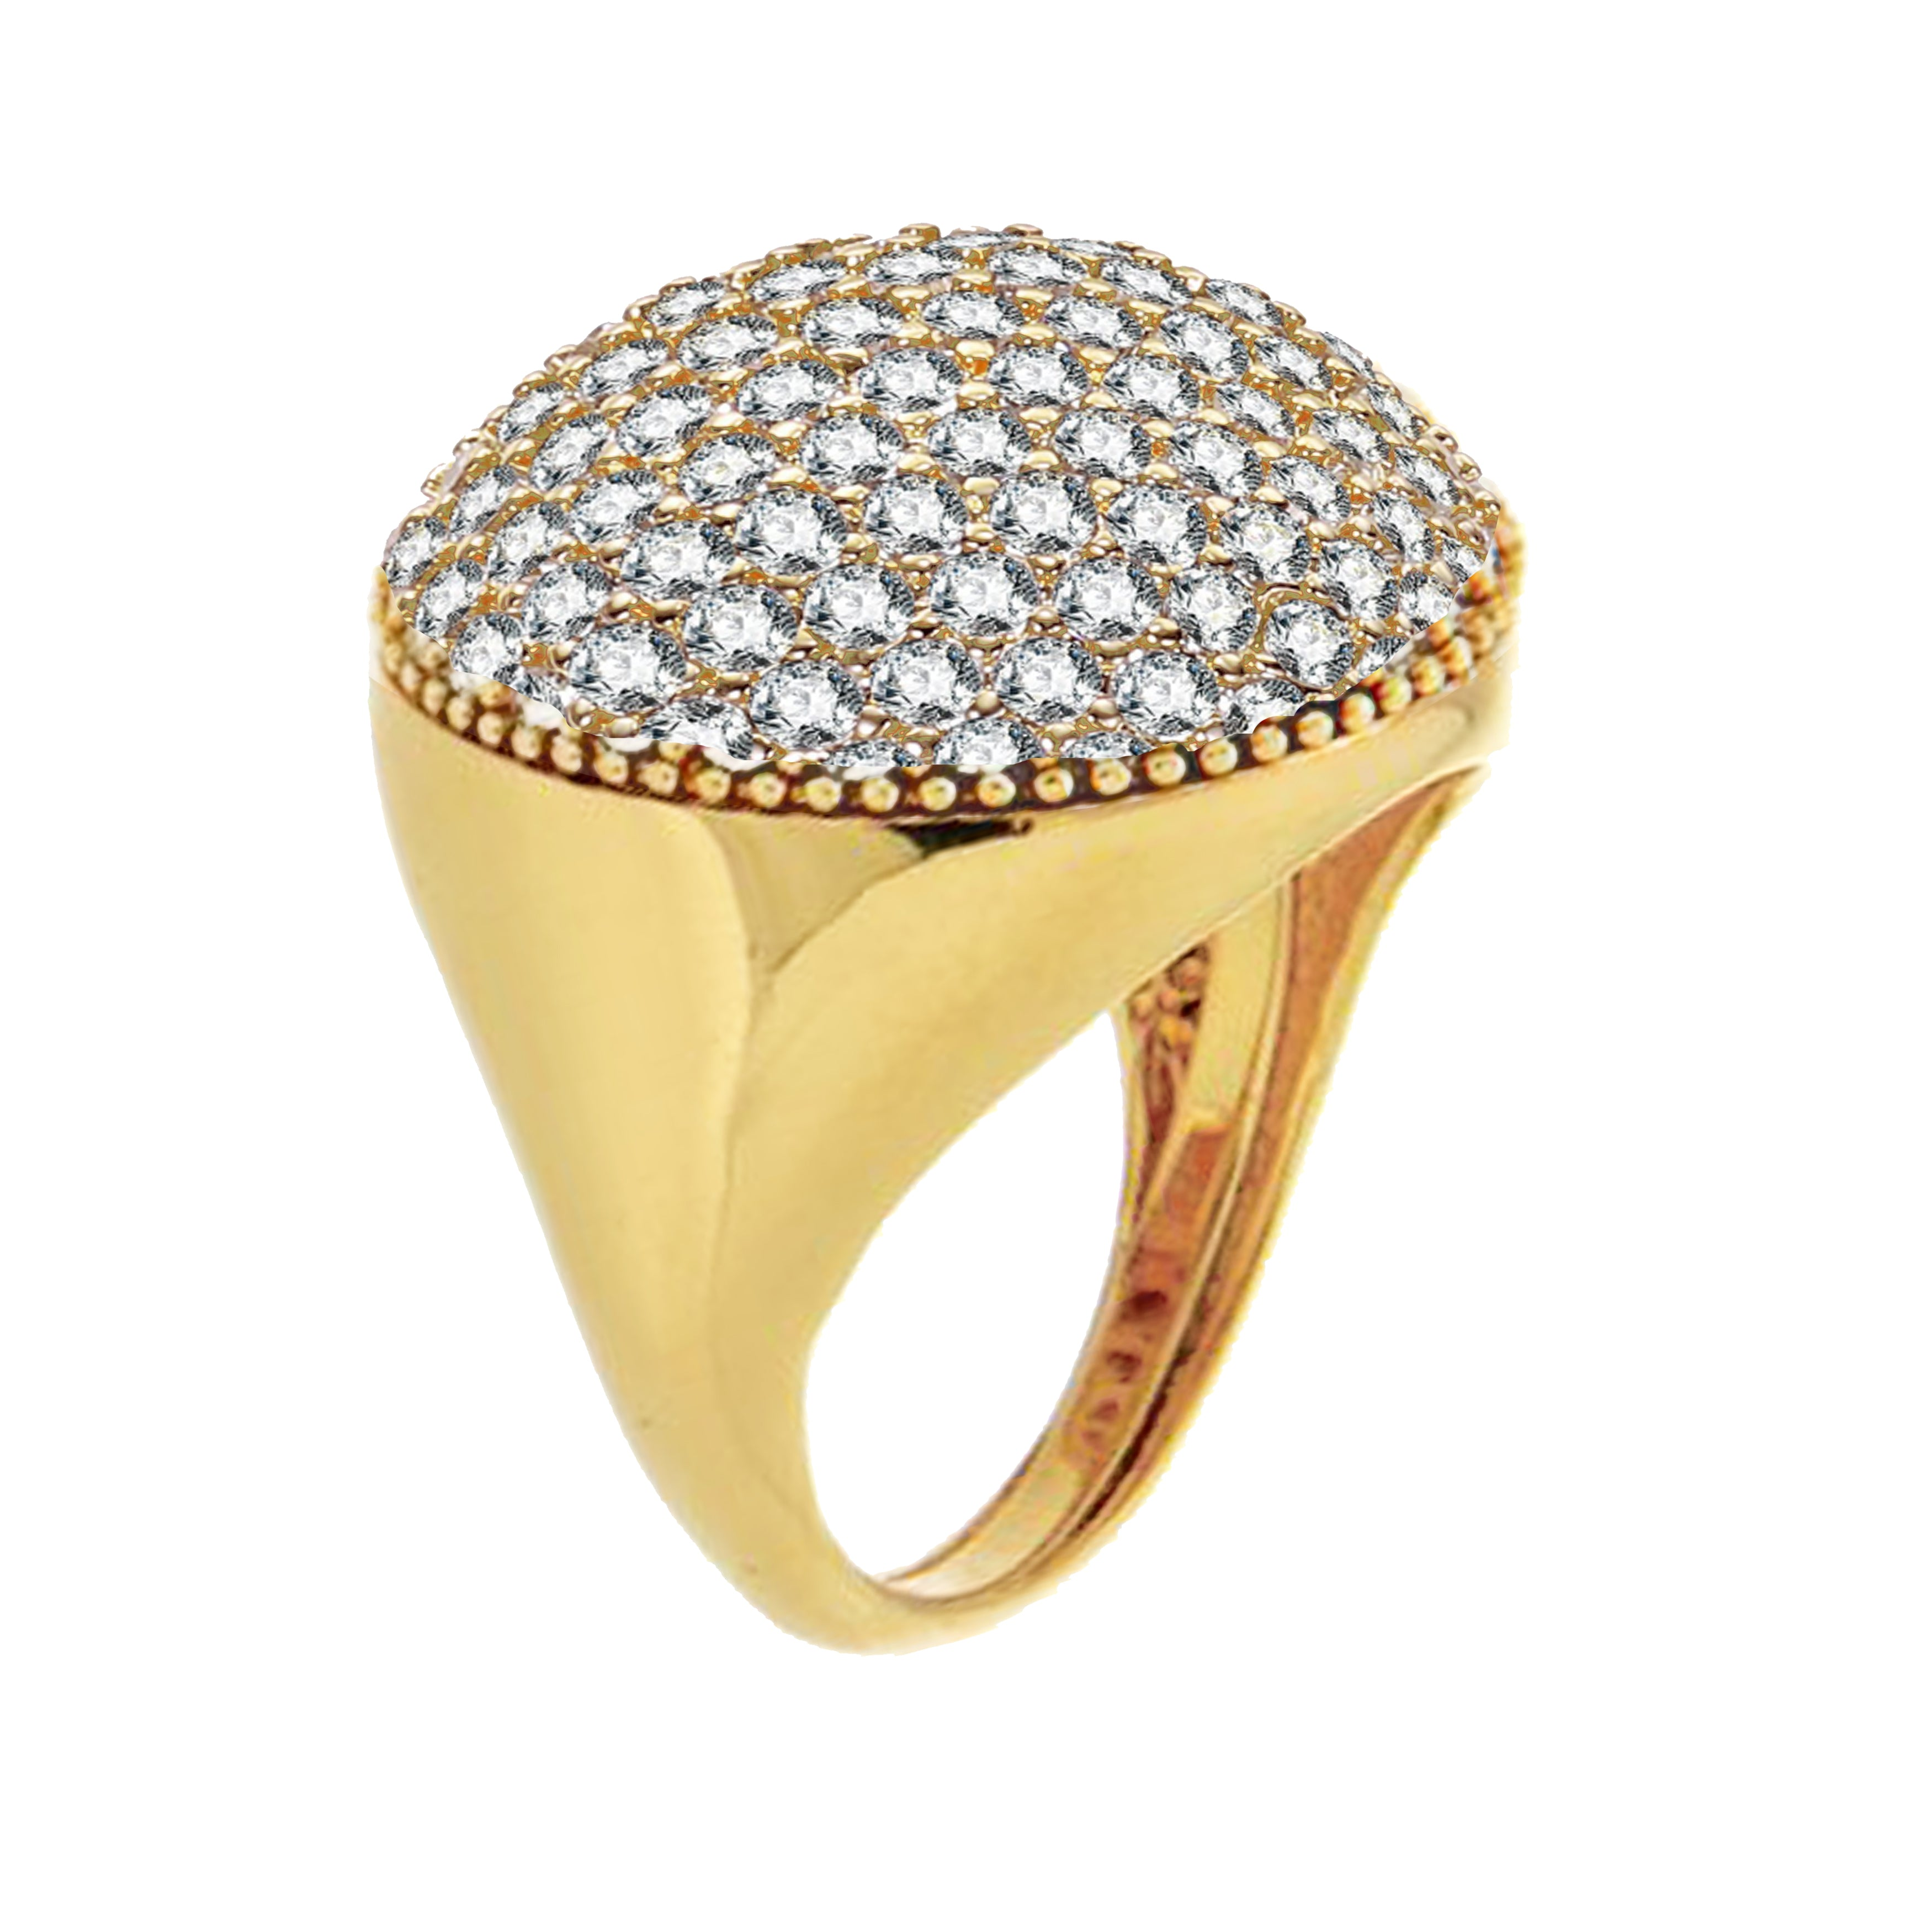 Forever Last 18 kt Gold Plated Women's Round Dome Ring White Cubics